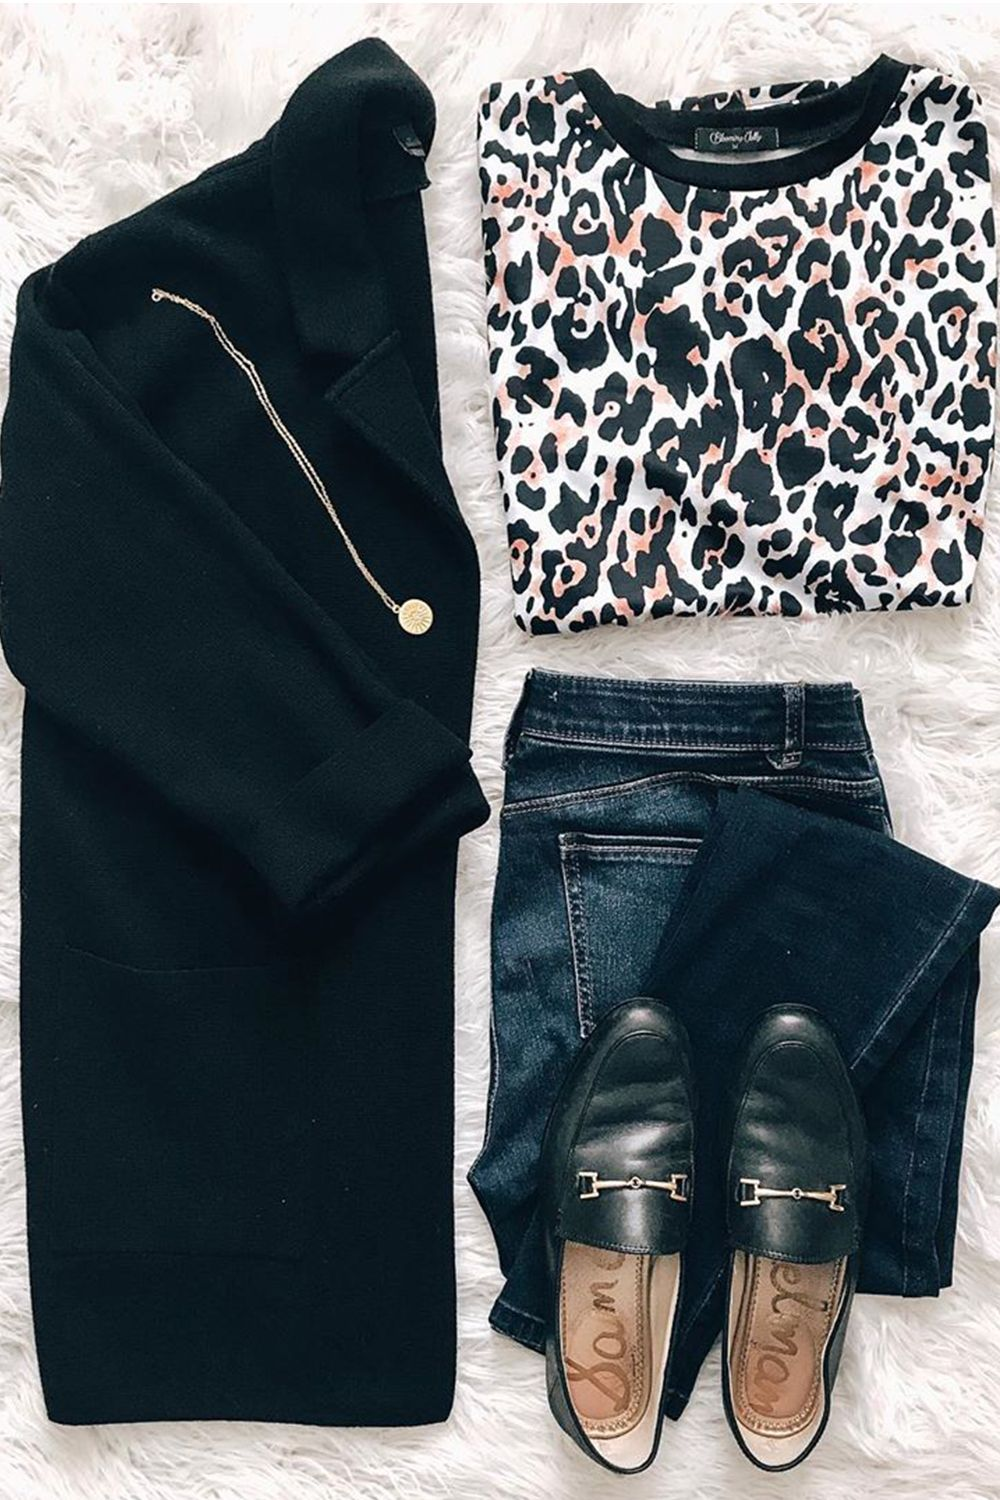 Easy to styling all your favorite styles with this Casual Leopard Print Loose T-Shirt from Blooming Jelly. Made from super soft material with cute cheetah print, great for streetwear, business casual outfits; perfect for mom, office women, teacher and more. #BloomingJelly #LeopardPrint #LeopardOutfits #StylingTips #OutfitsInspo